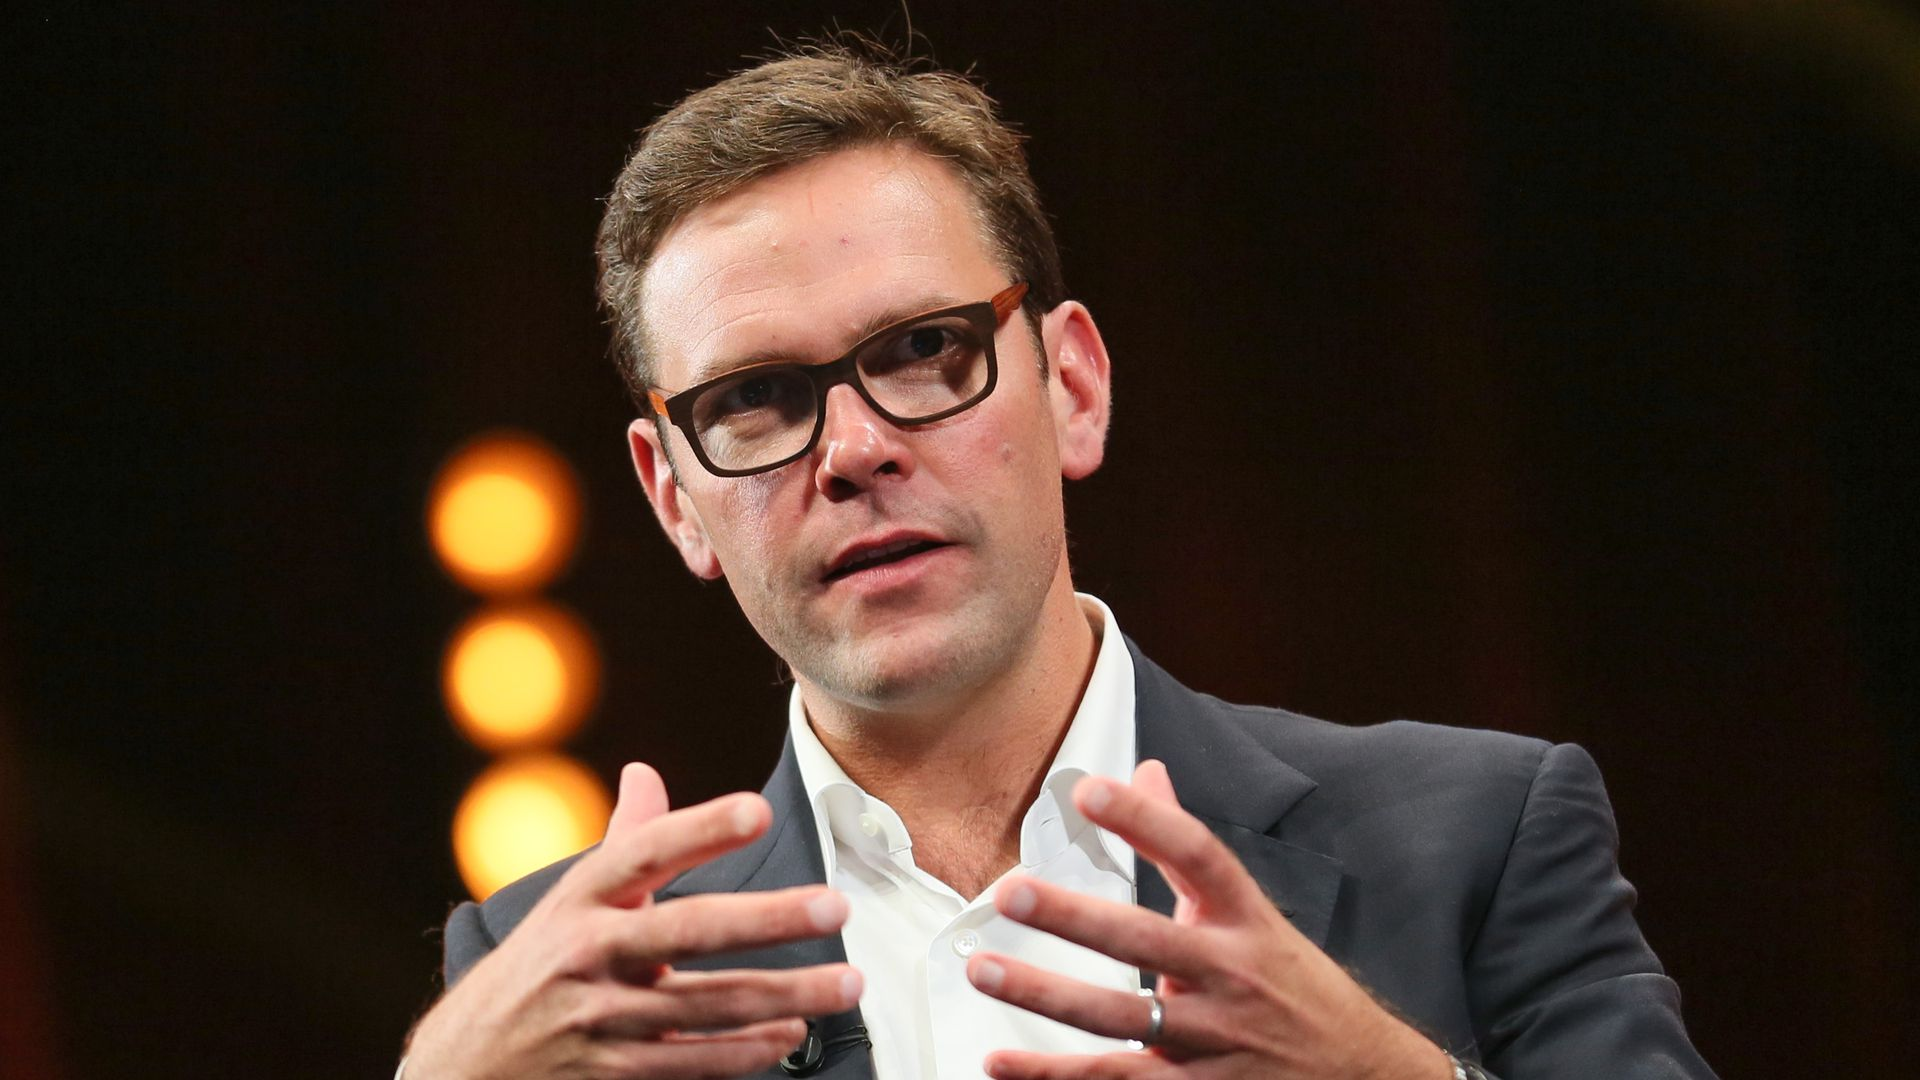 James Murdoch at a keynote in Cannes, France.